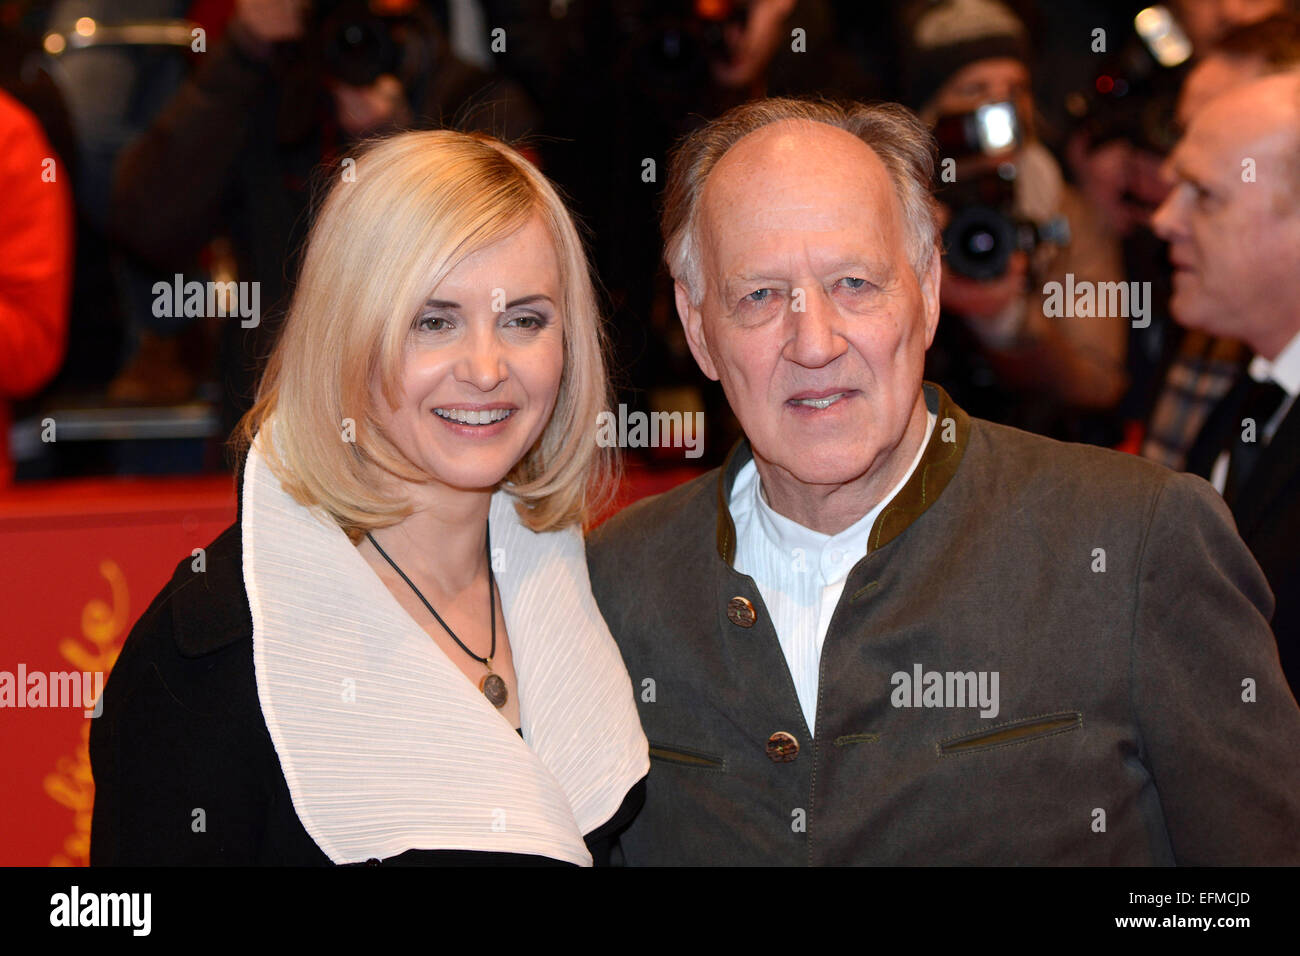 Werner Herzog Wife Lena Attending Stock Photos & Werner ...